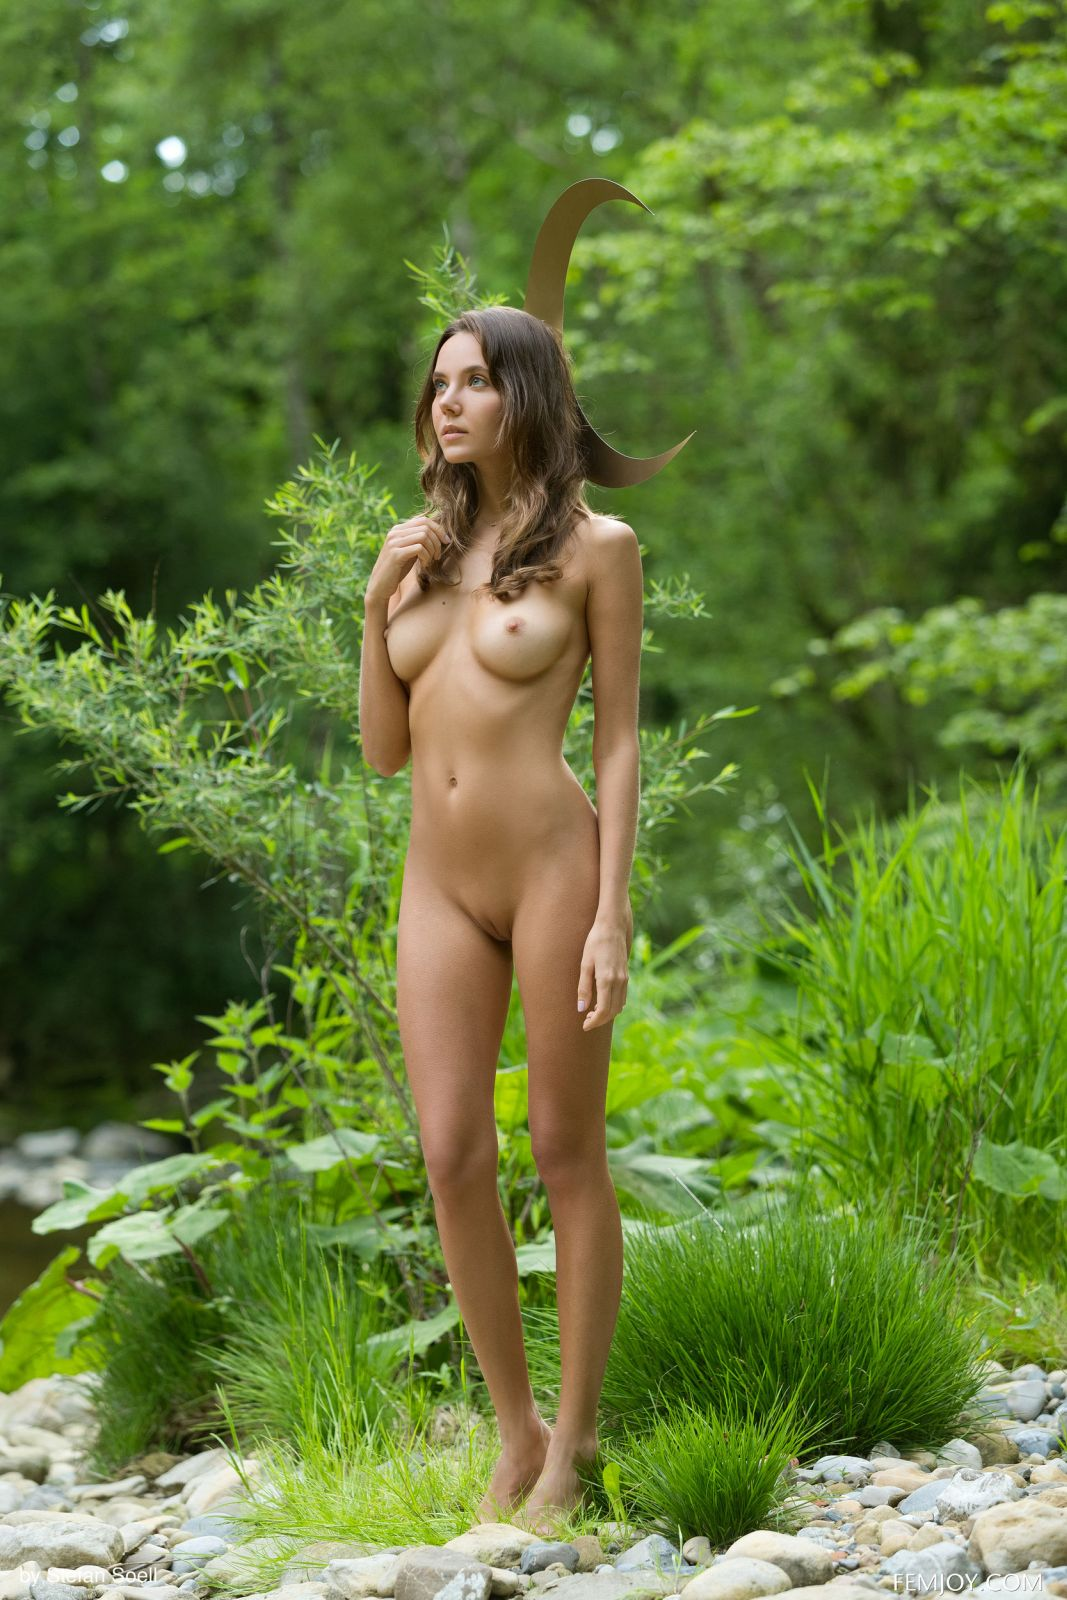 Nude In The Woods